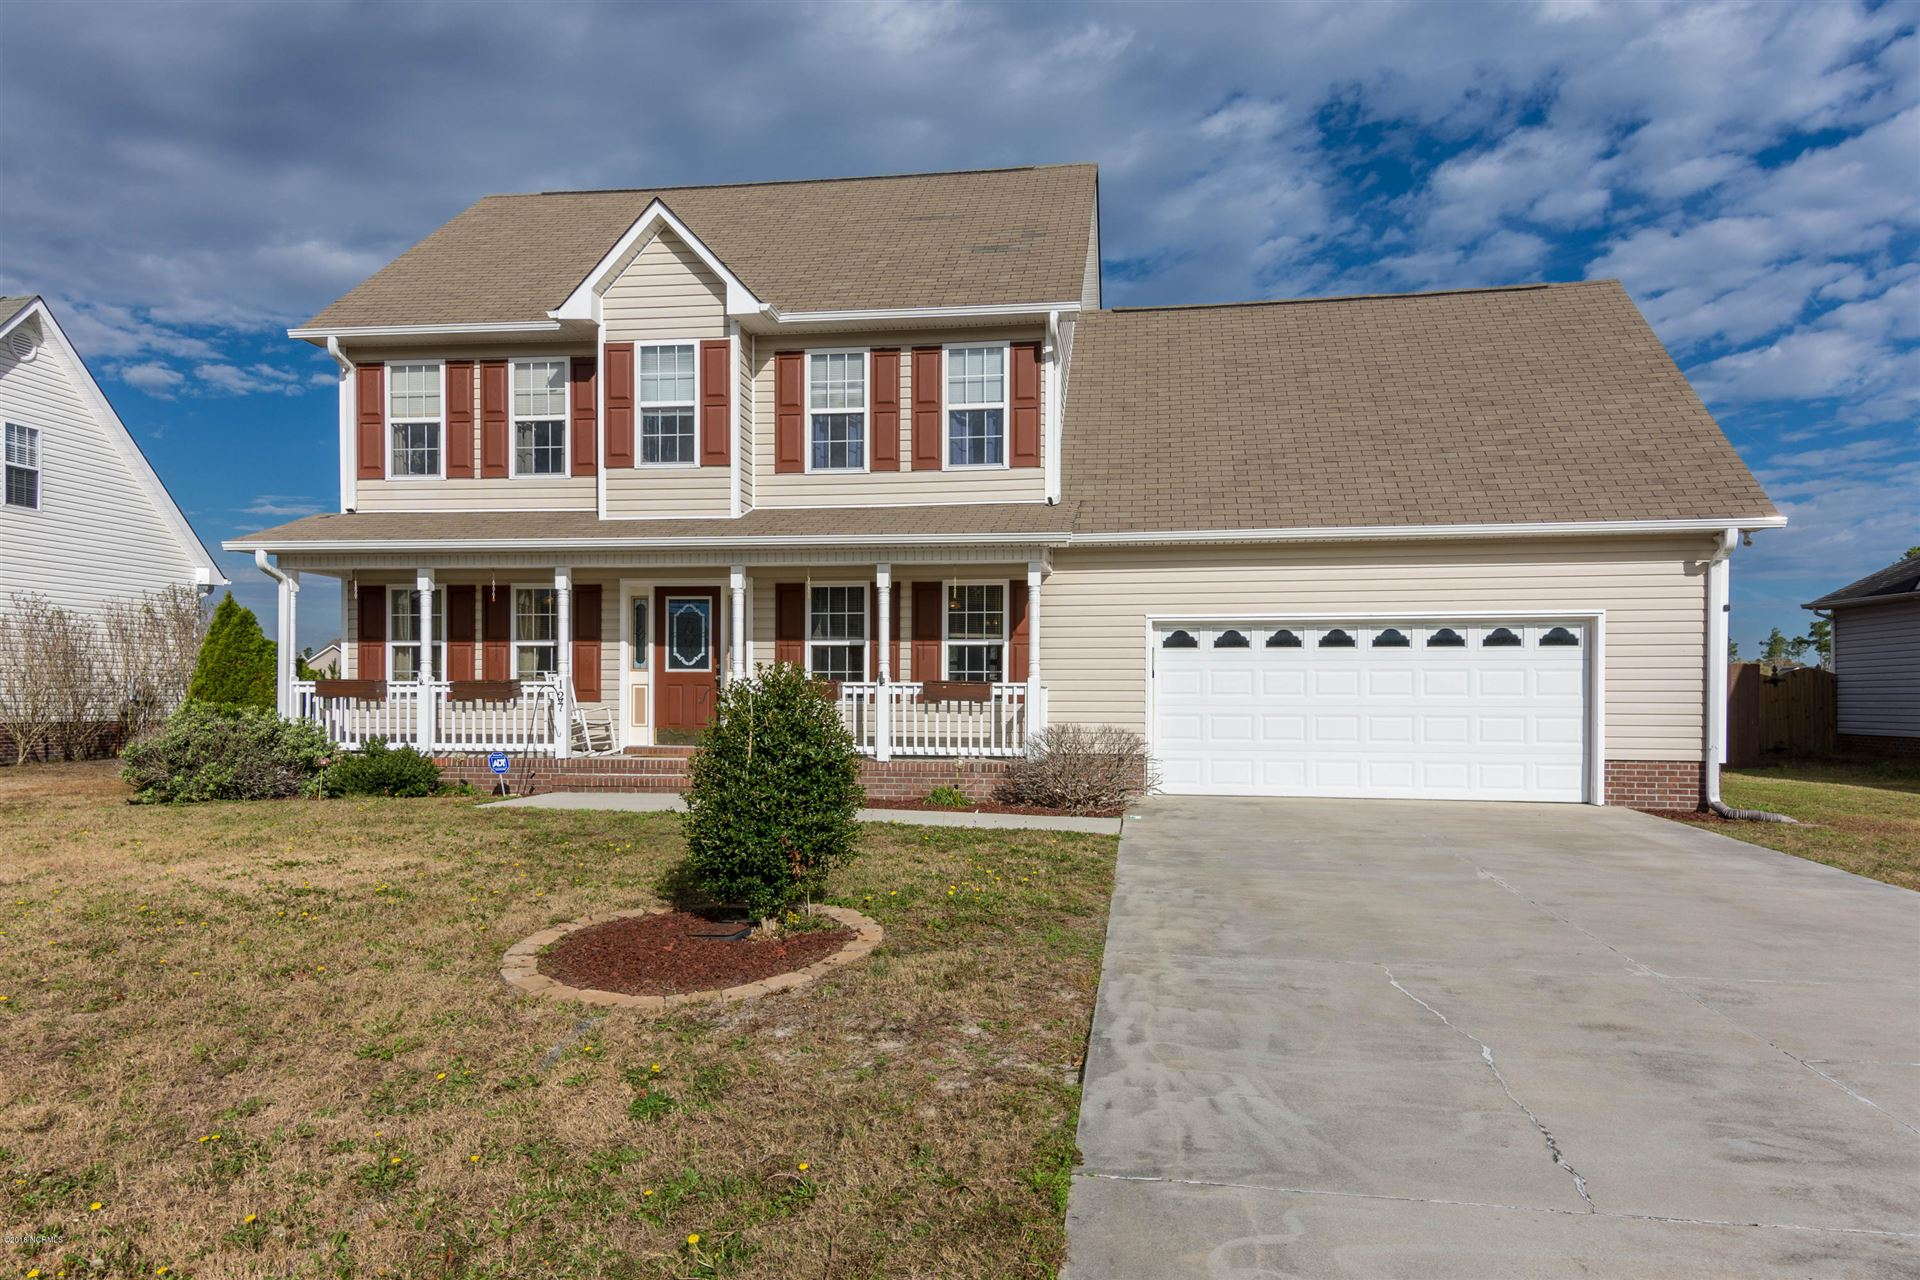 Photo for 127 Harvest Moon Drive, Richlands, NC 28574 (MLS # 100142242)